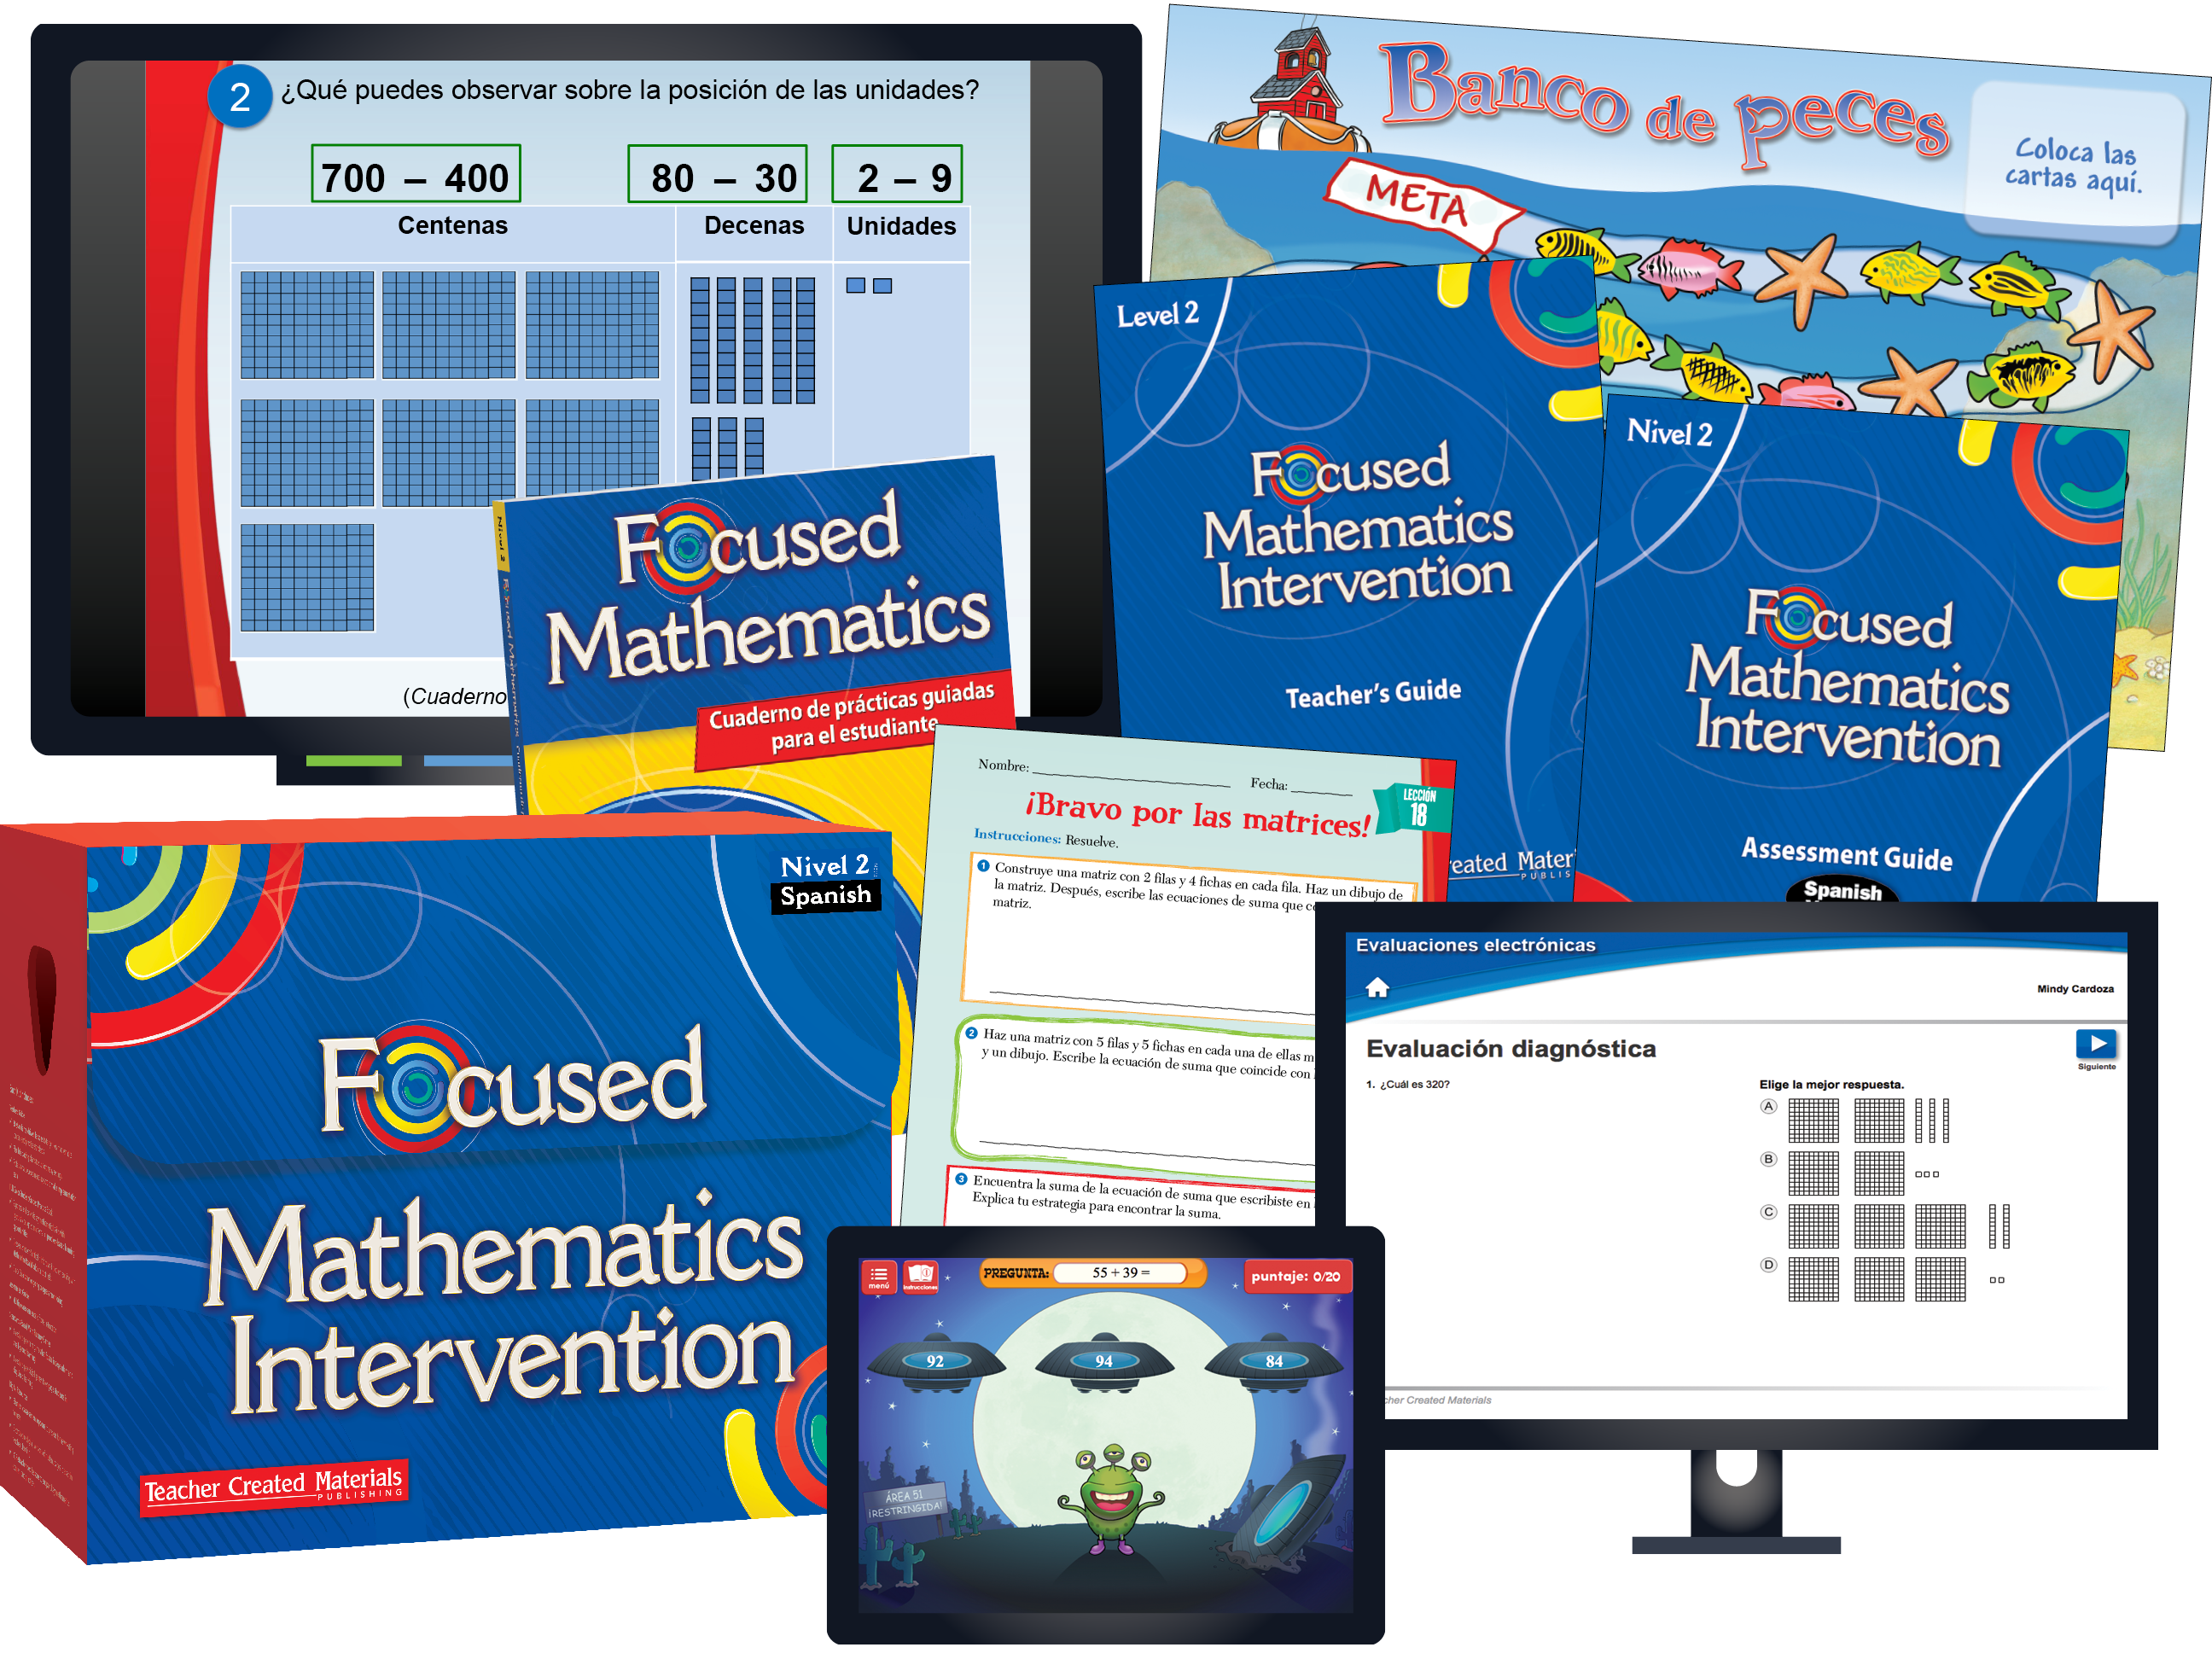 Focused Mathematics Intervention: Nivel 2 (Level 2): Spanish Kit